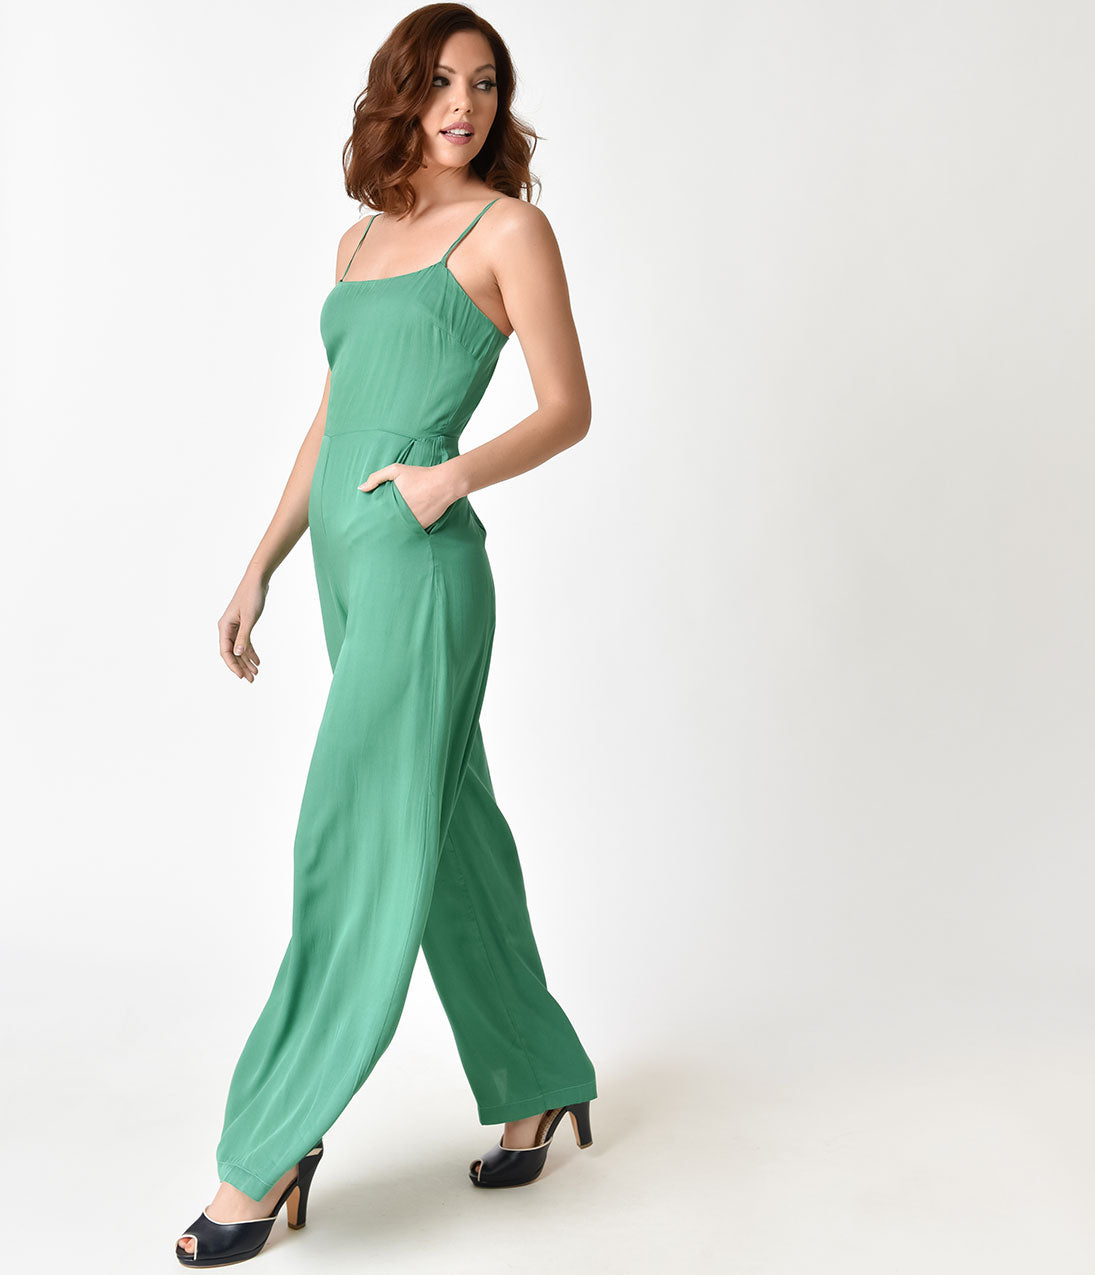 Vintage High Waisted Trousers, Sailor Pants, Jeans Retro Style Emerald Green Sleeveless Wide Leg Jumpsuit $46.00 AT vintagedancer.com